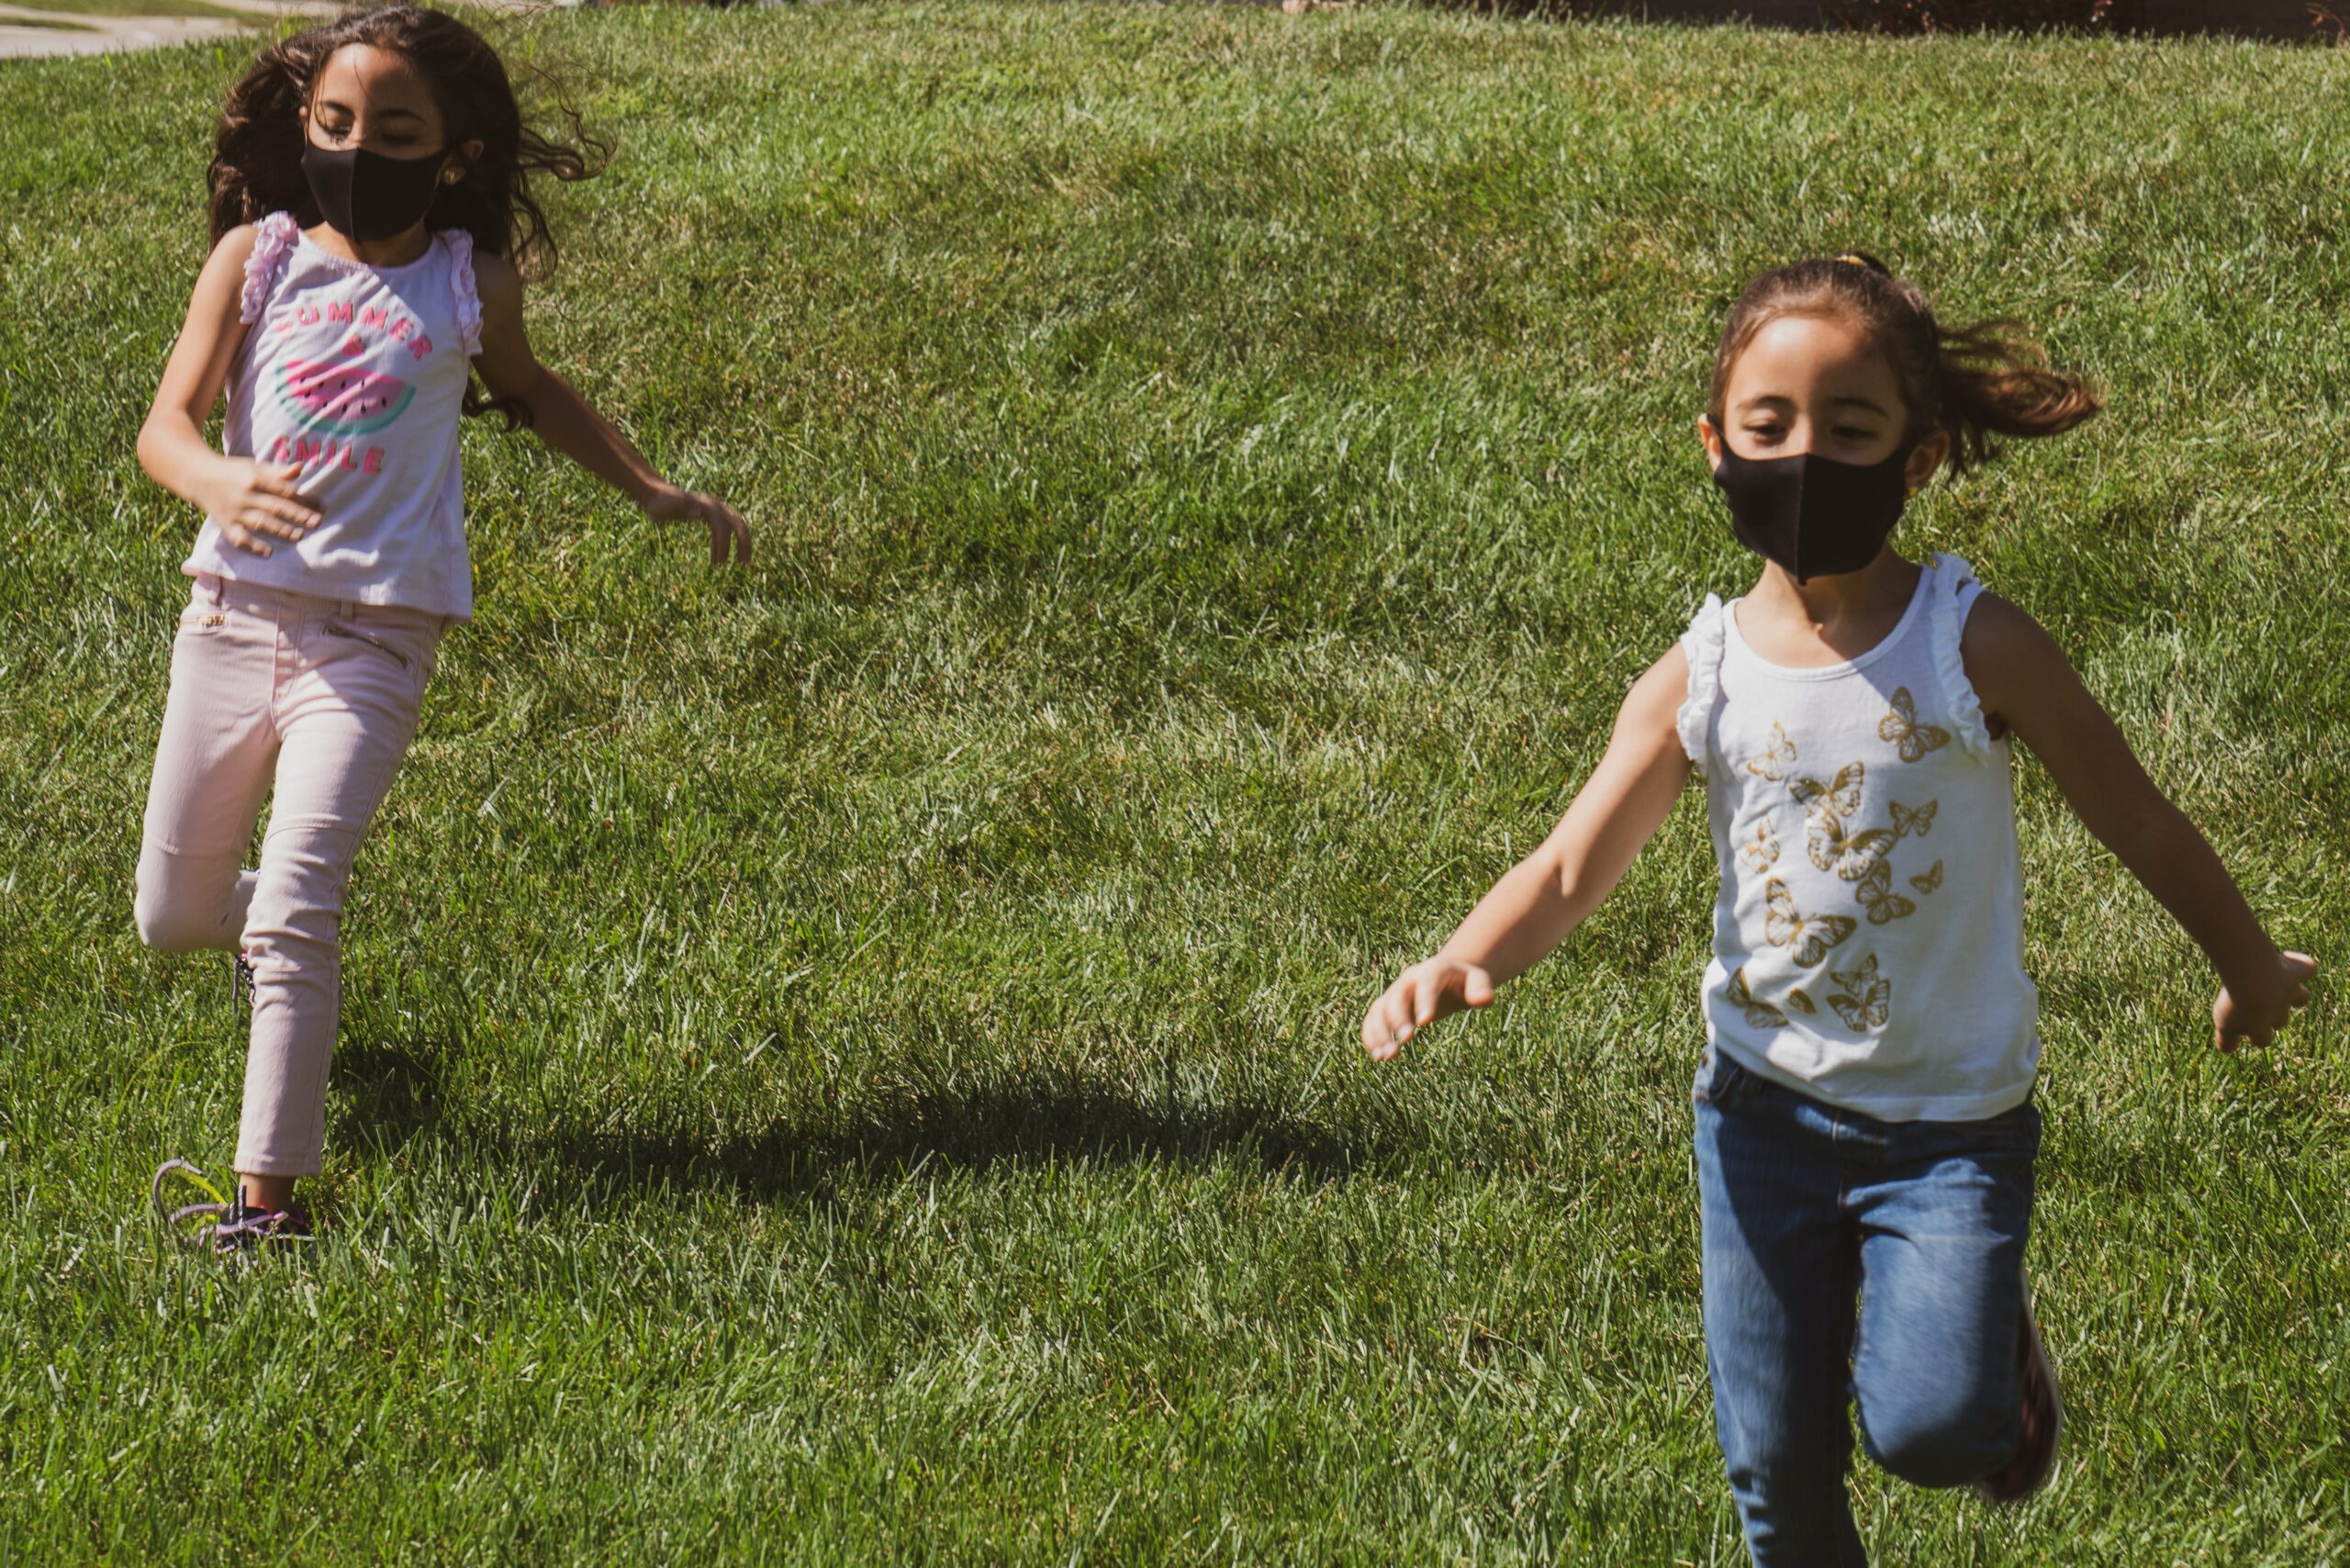 Let Our Kids Breathe – Take Action